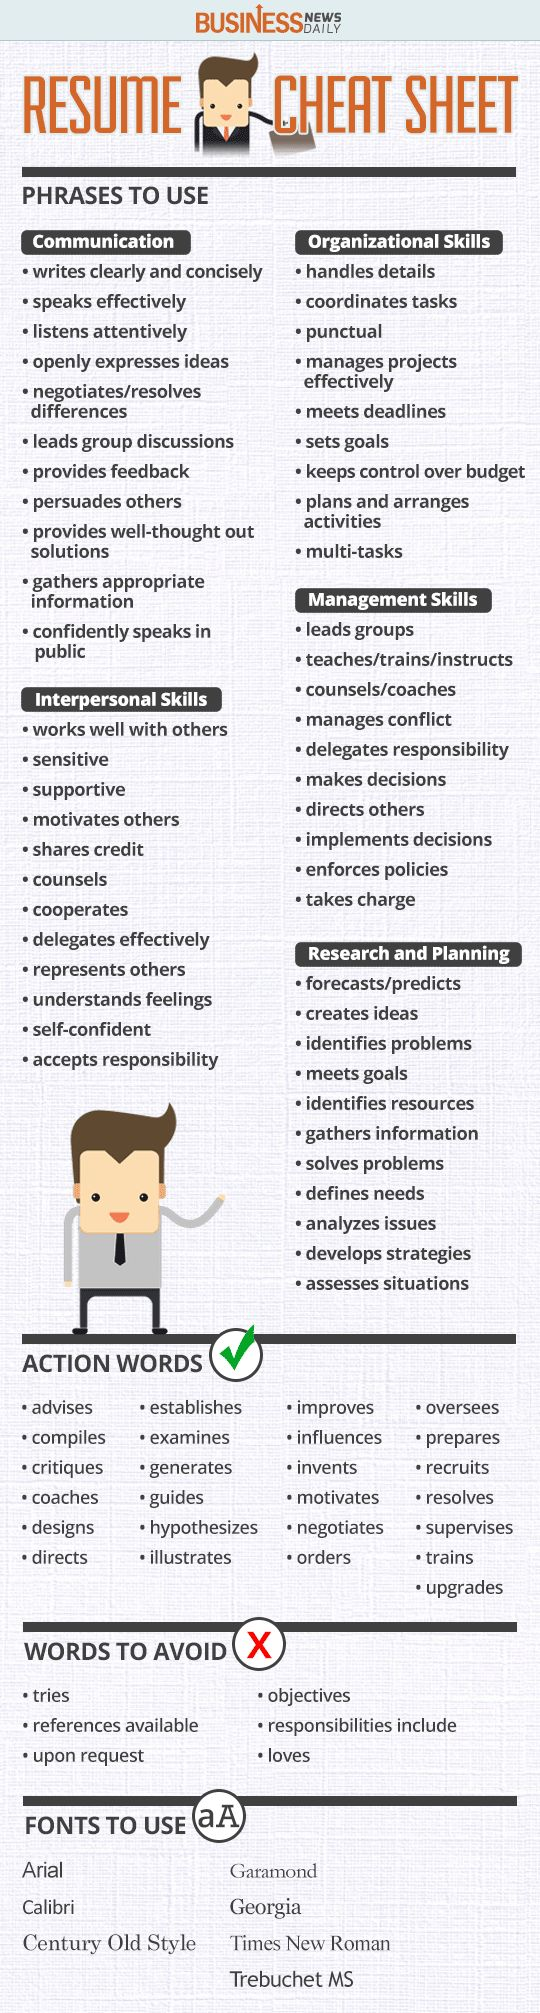 Opposenewapstandardsus  Fascinating  Ideas About Resume On Pinterest  Cv Format Resume Cv And  With Exquisite Resume Cheat Sheet Infographic Andrews Almost Done With A Complete Unit On Employment Which With Extraordinary Cna Job Duties Resume Also Cma Resume In Addition Administrative Manager Resume And Etl Resume As Well As Administrative Specialist Resume Additionally Resume Photos From Pinterestcom With Opposenewapstandardsus  Exquisite  Ideas About Resume On Pinterest  Cv Format Resume Cv And  With Extraordinary Resume Cheat Sheet Infographic Andrews Almost Done With A Complete Unit On Employment Which And Fascinating Cna Job Duties Resume Also Cma Resume In Addition Administrative Manager Resume From Pinterestcom